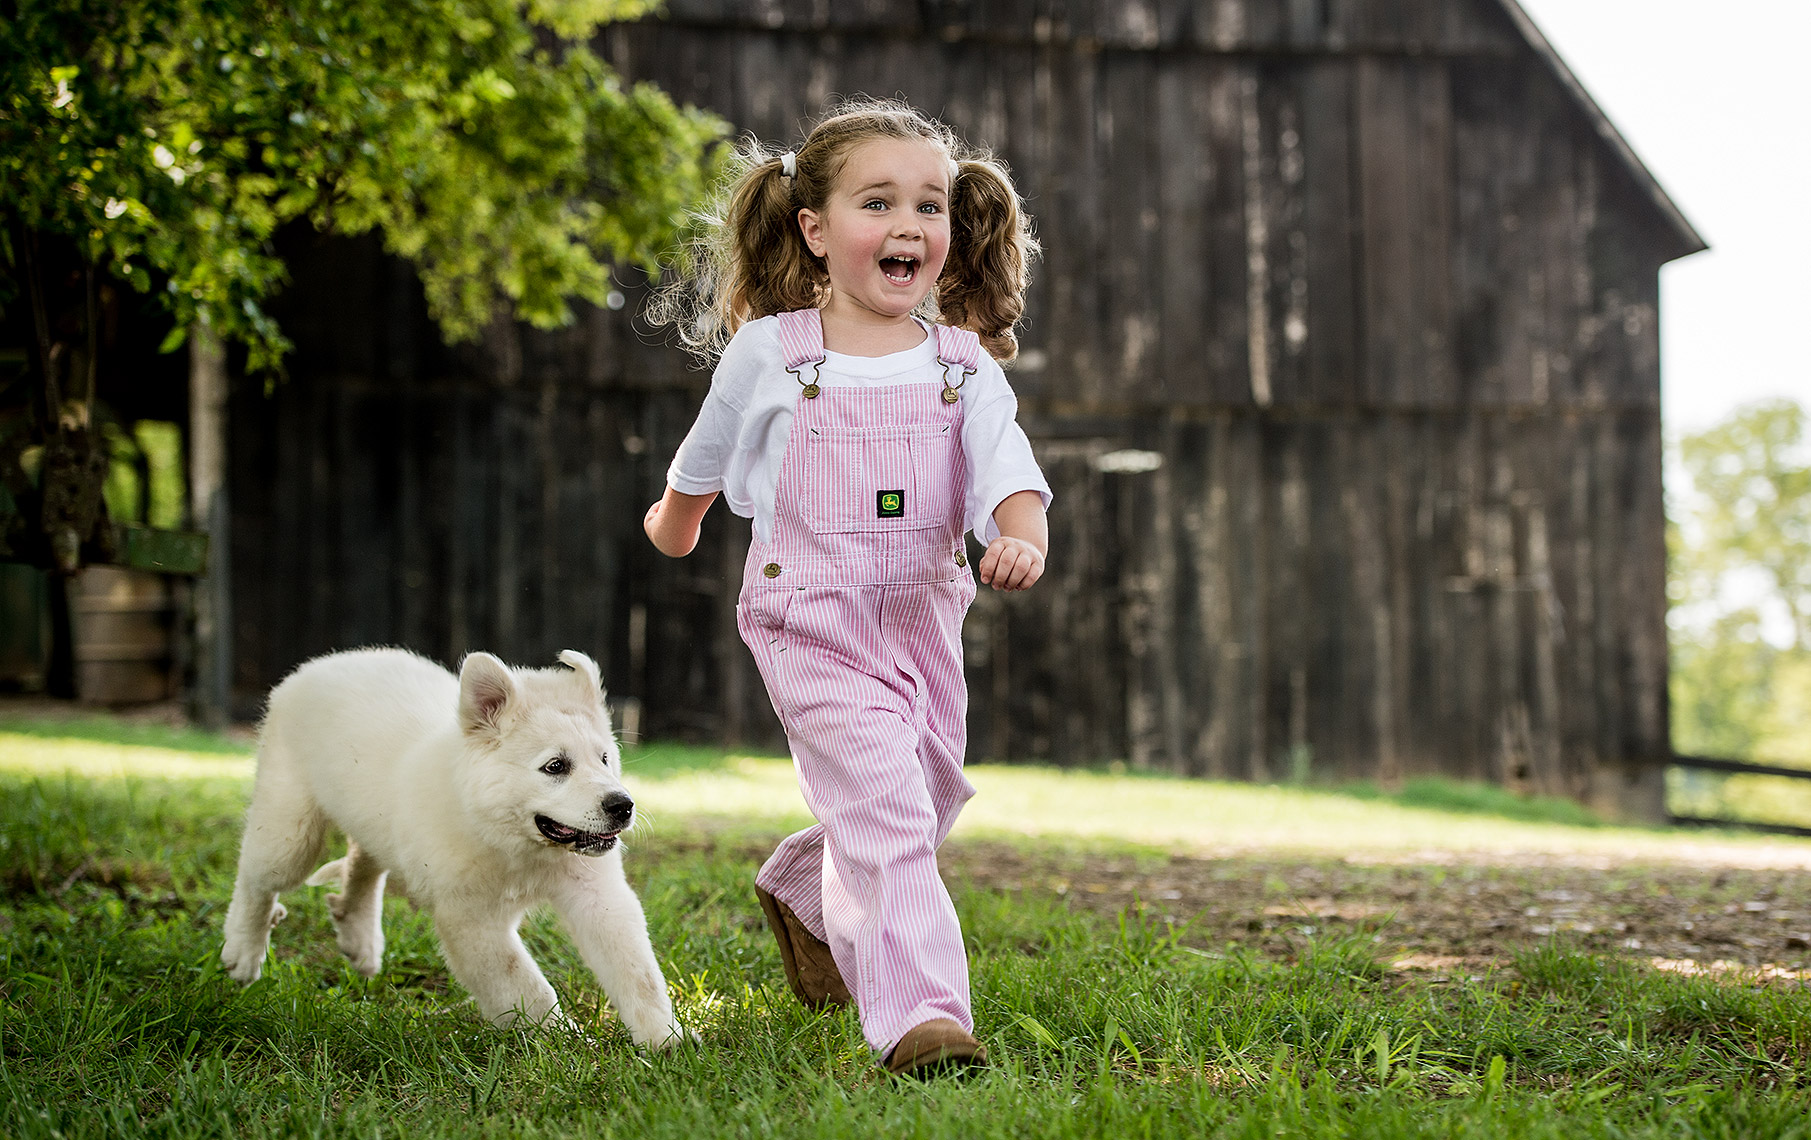 Young Girl with White Dog